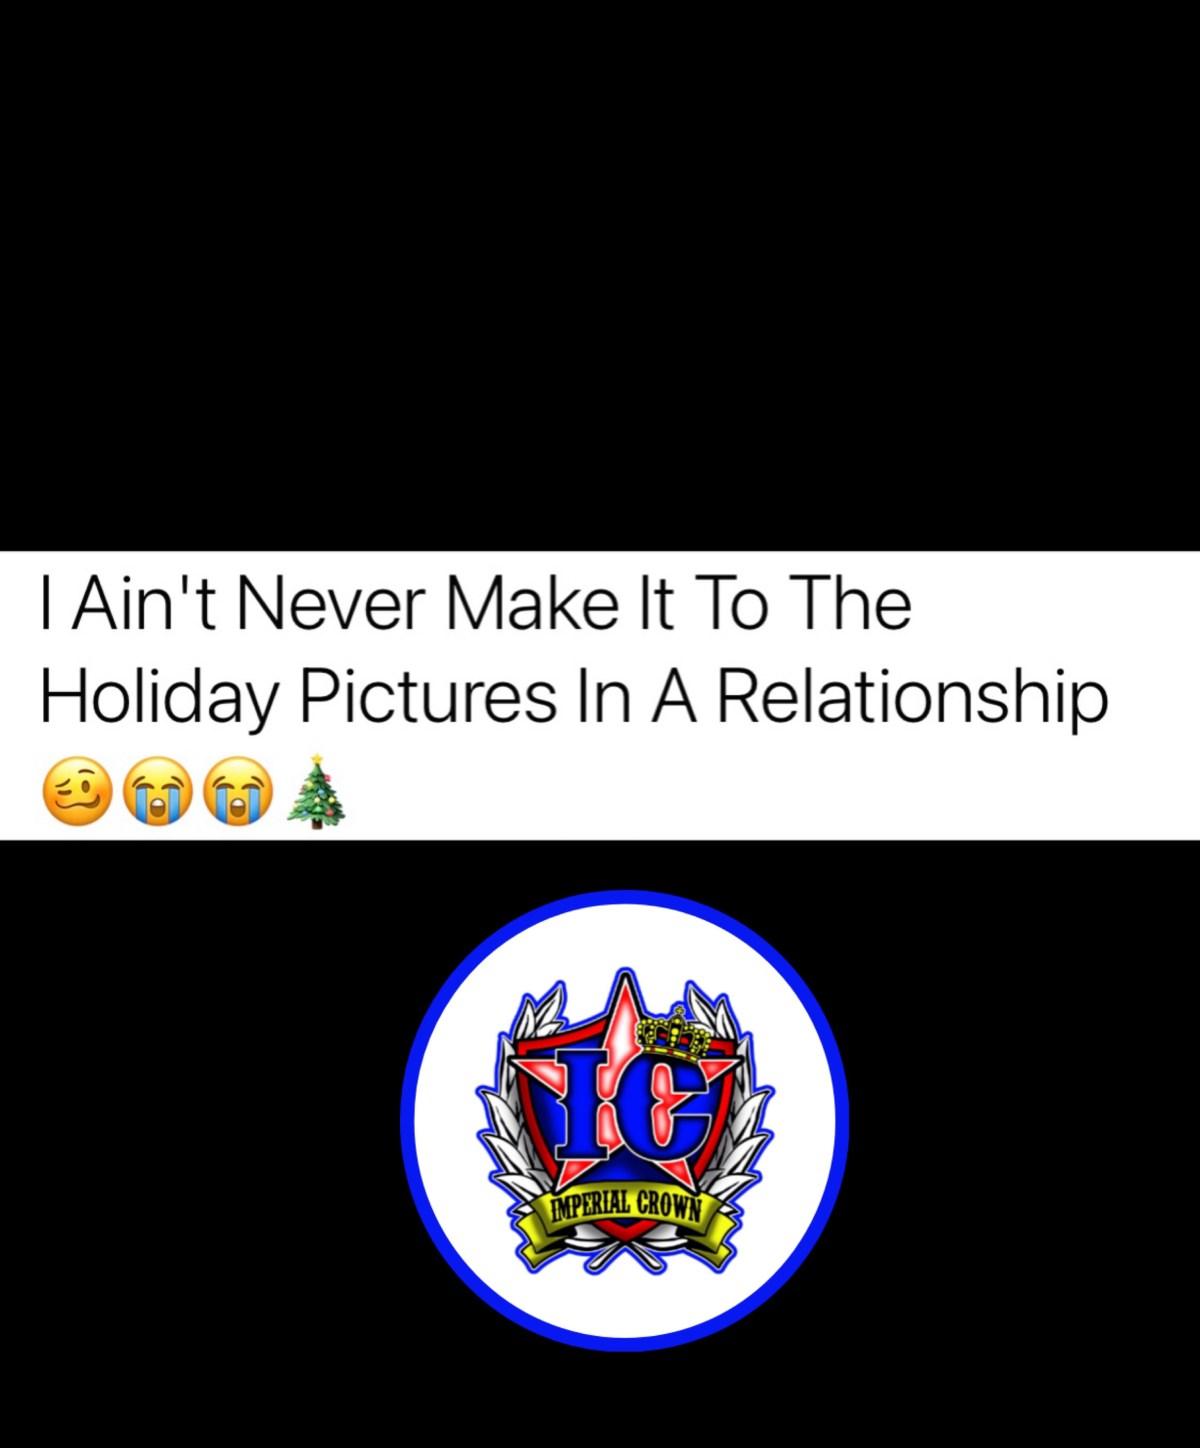 I ain't never make it to the holiday pictures in a relationship🥴😭😭🎄